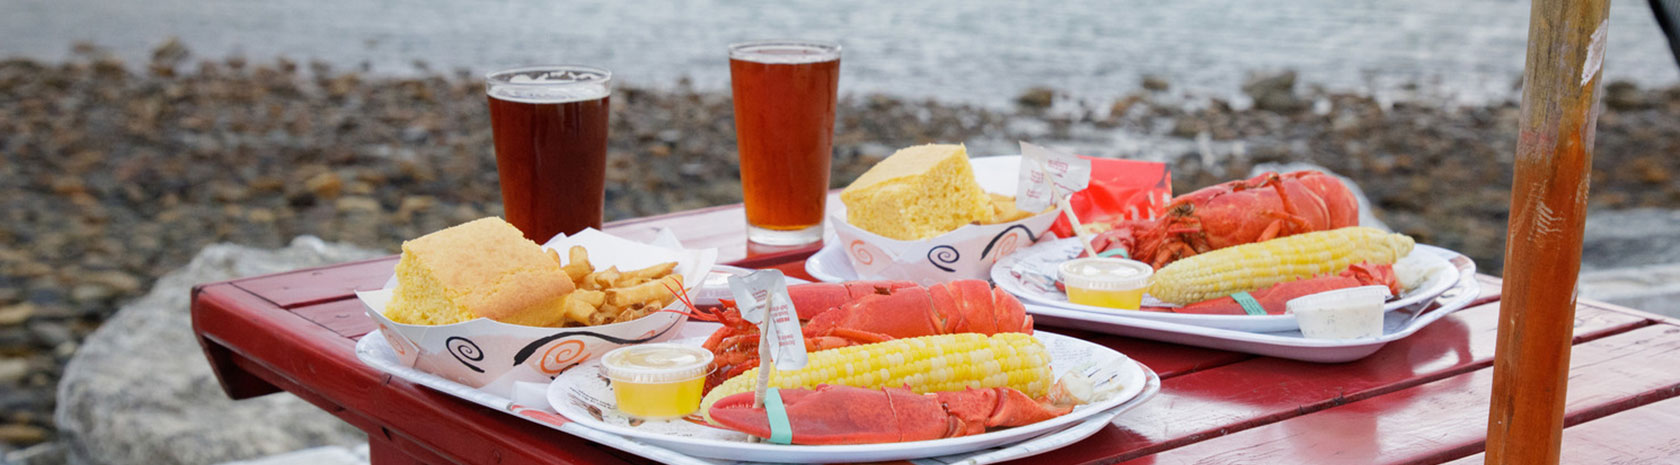 A close up shot of two lobster dishes and beers on a small table with a umbrella on a rocky shoreline.